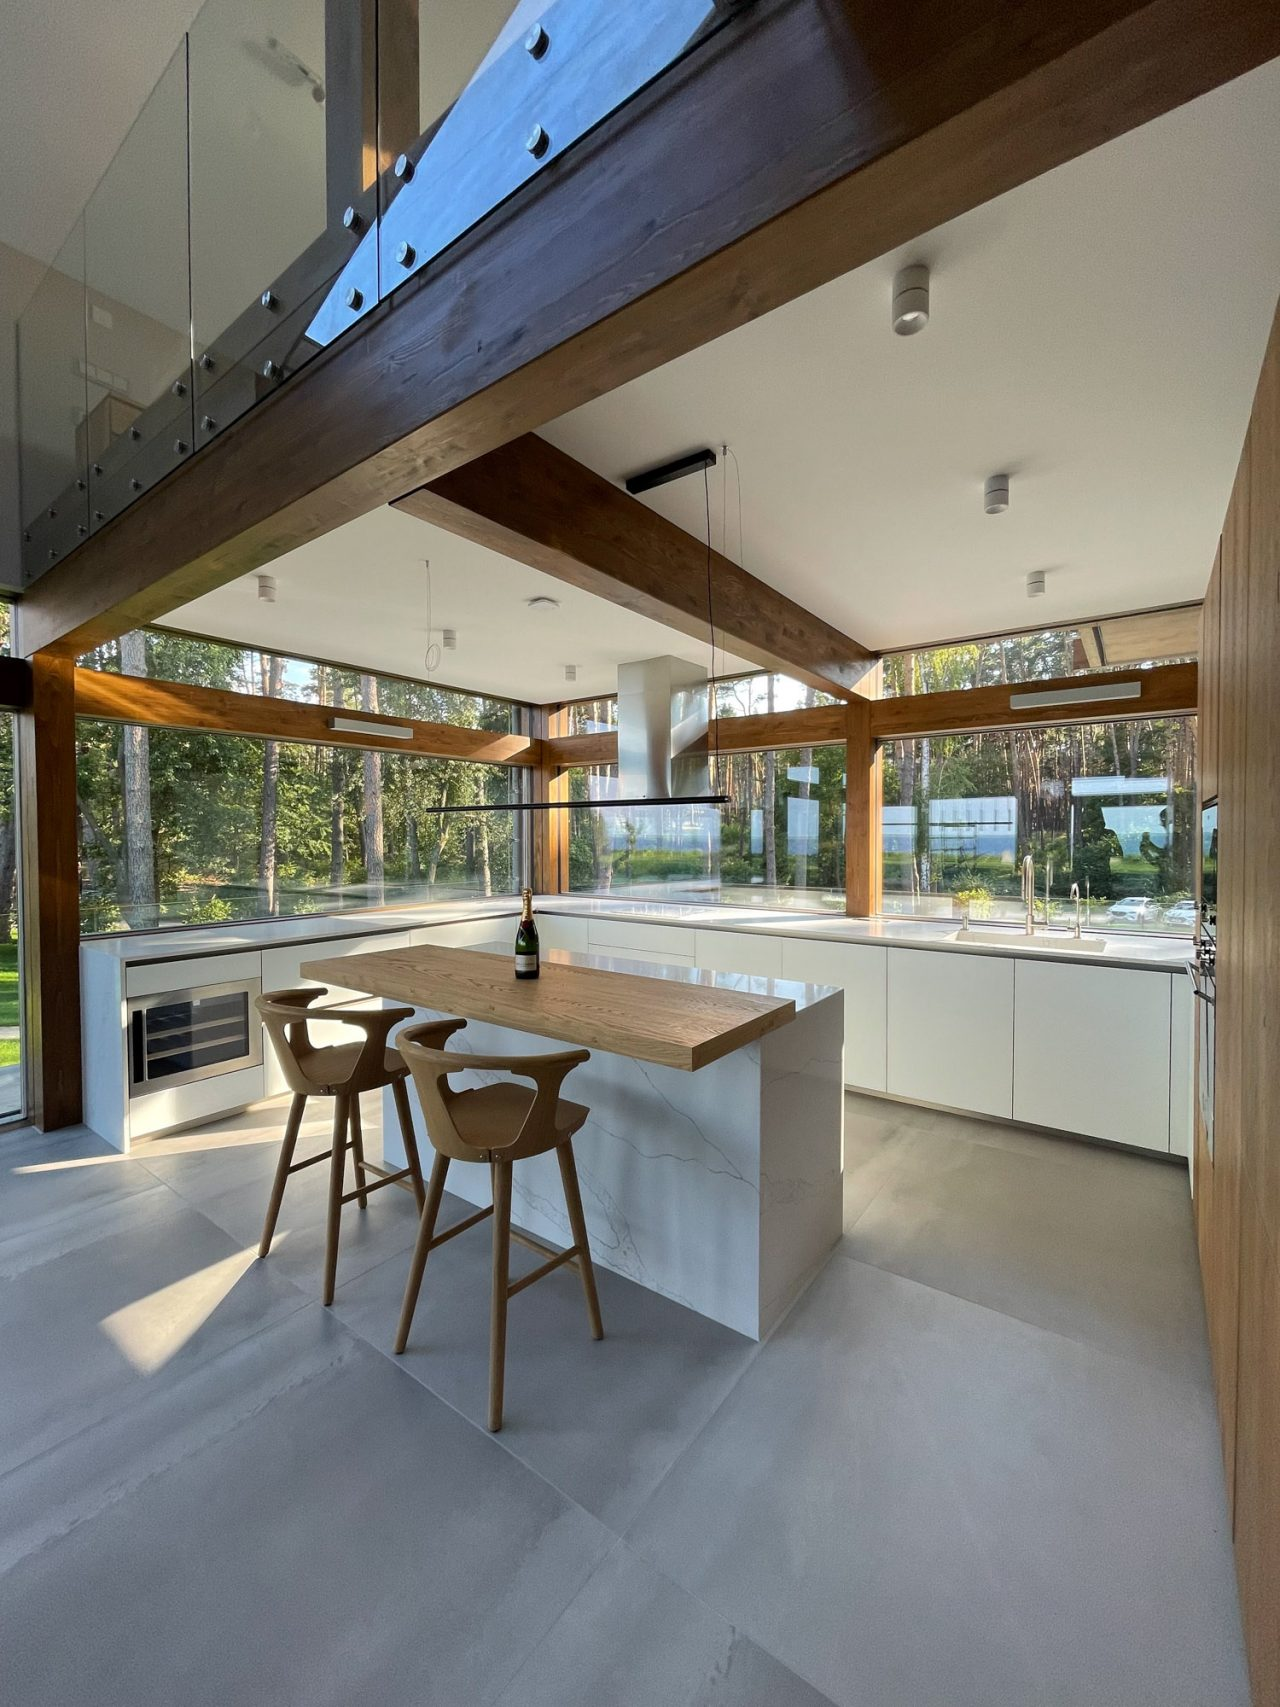 Hlass_house_KAGER - Hurii_01